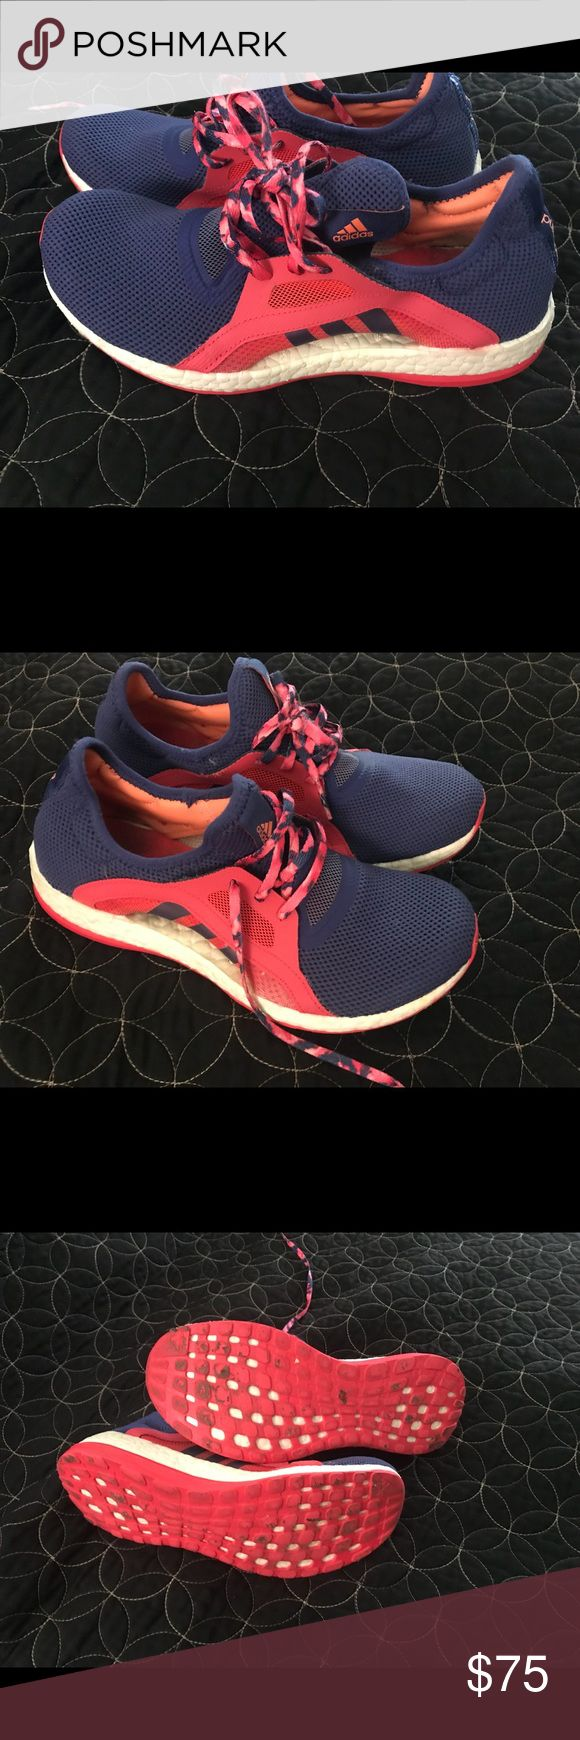 Adidas pure boost 7.5 good condition, they need new insoles adidas Shoes Athletic Shoes